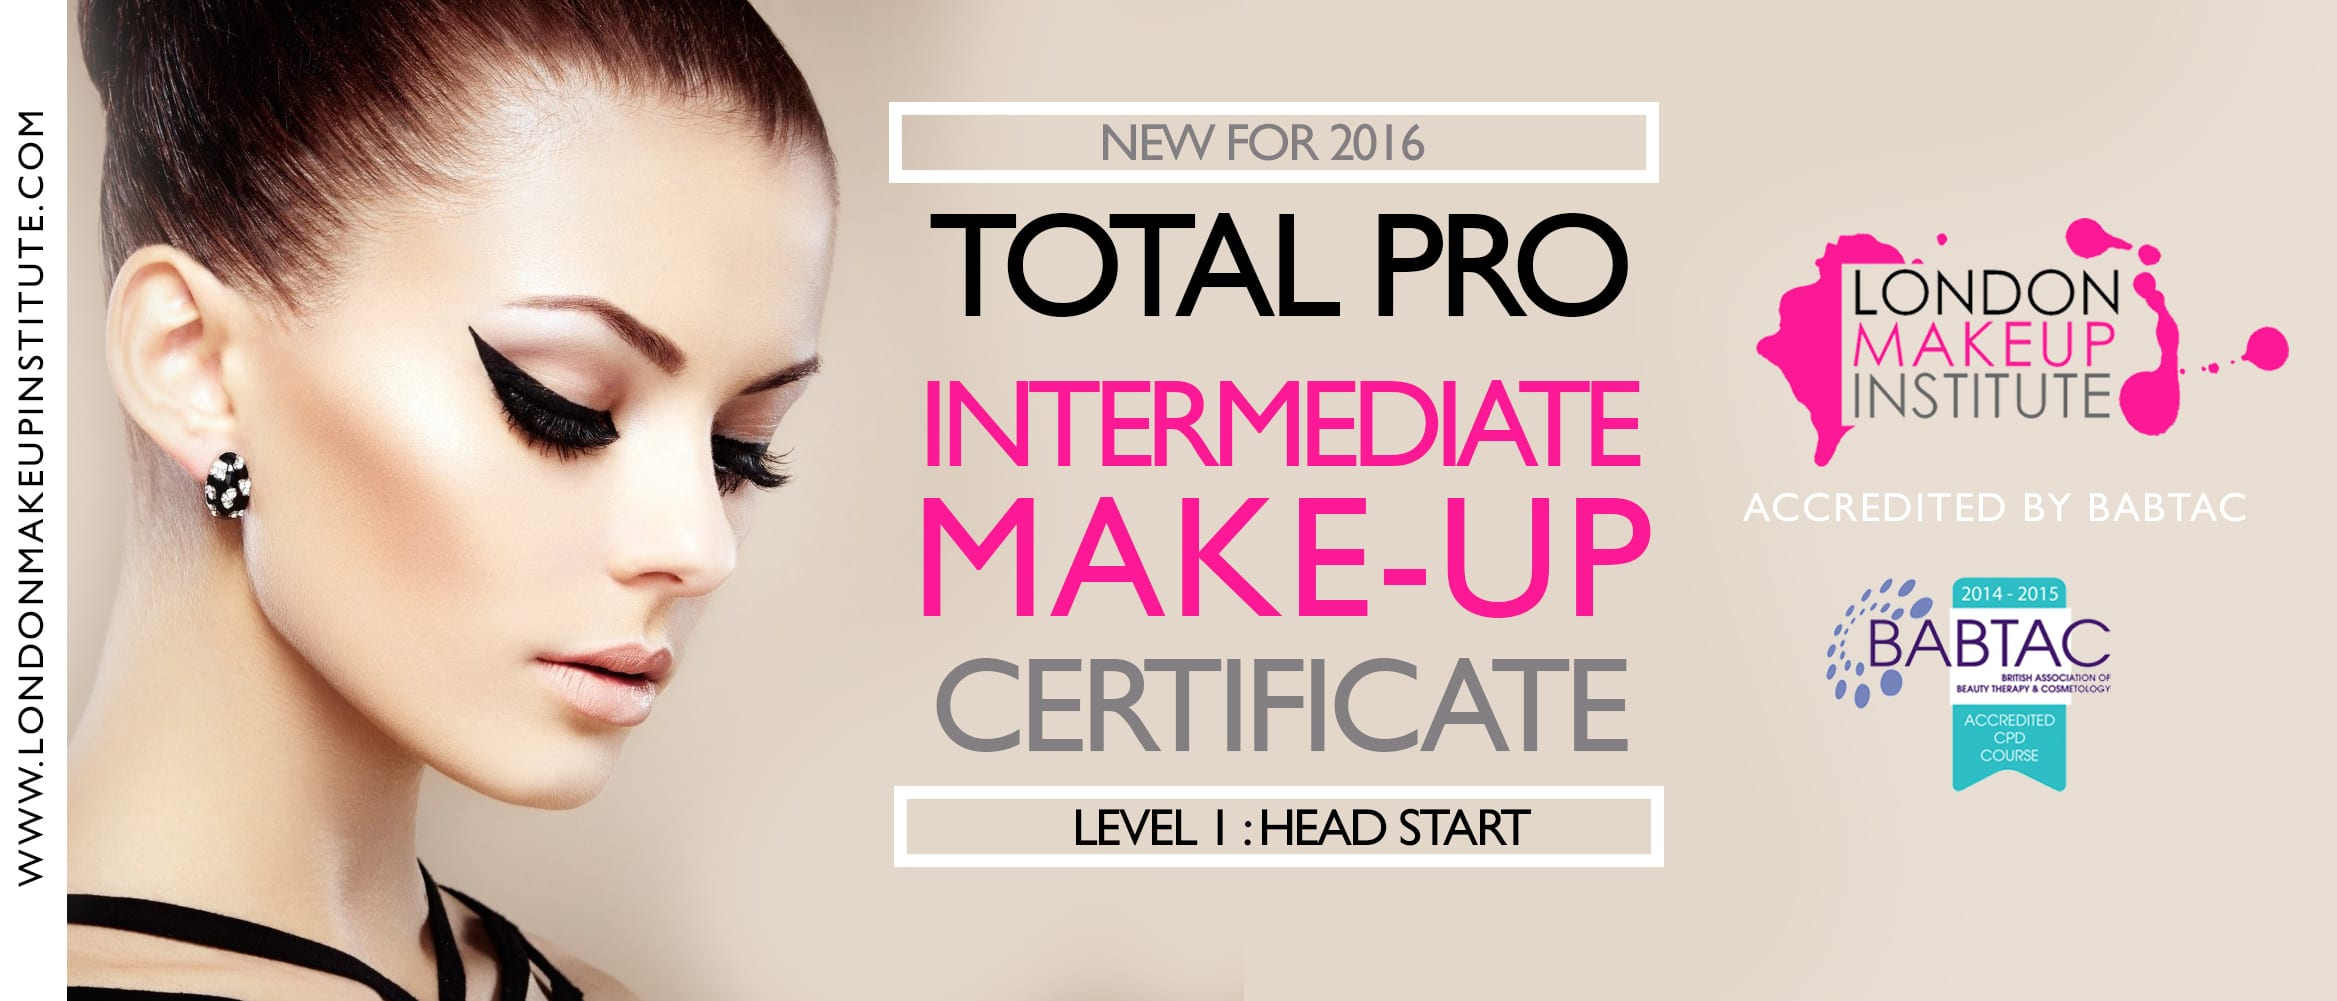 Beginners Make-up Course London